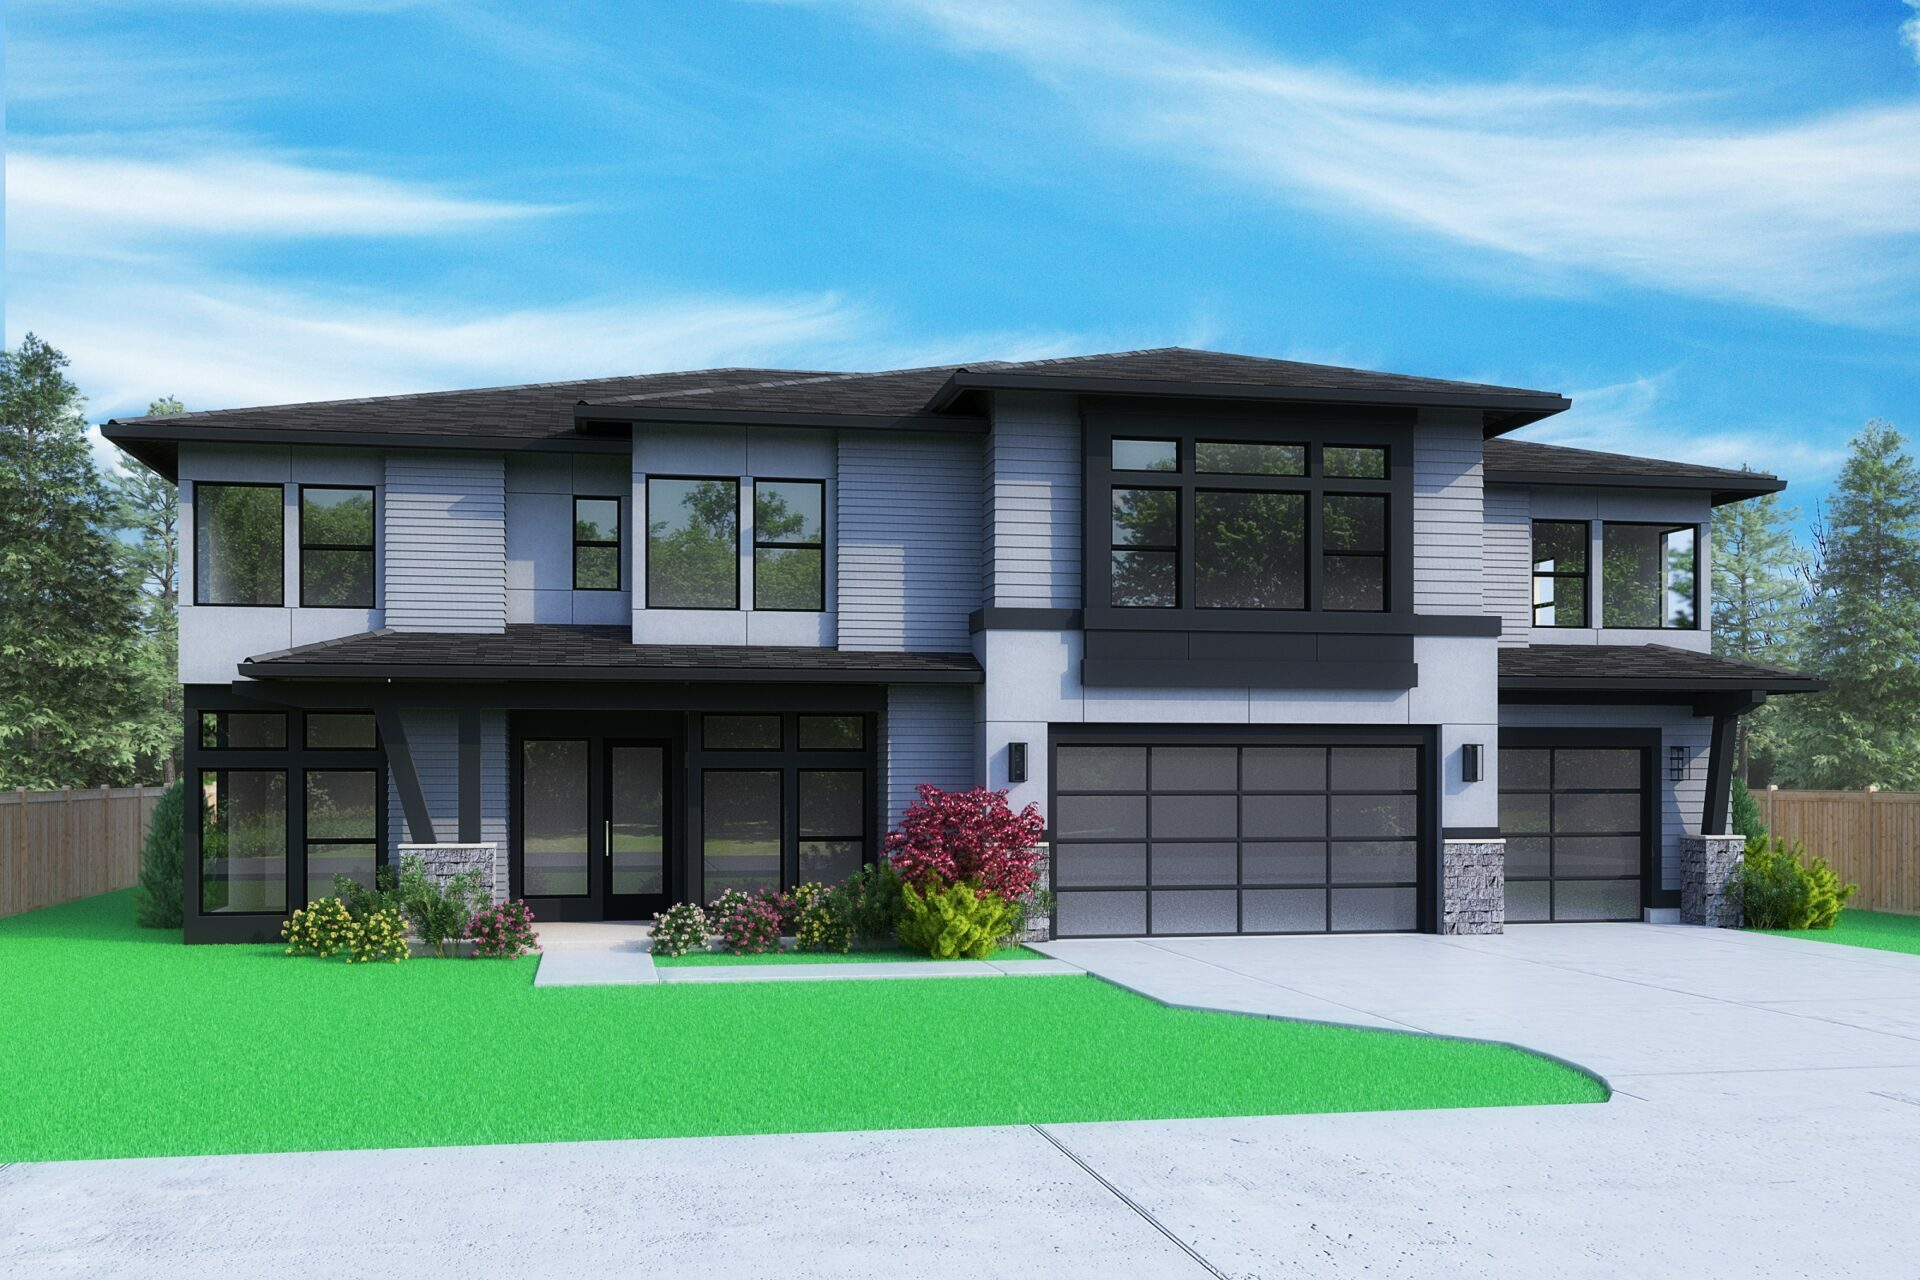 View our new luxury home construction on 10479 SE 19th St, in Bellevue, WA from MN Custom Homes